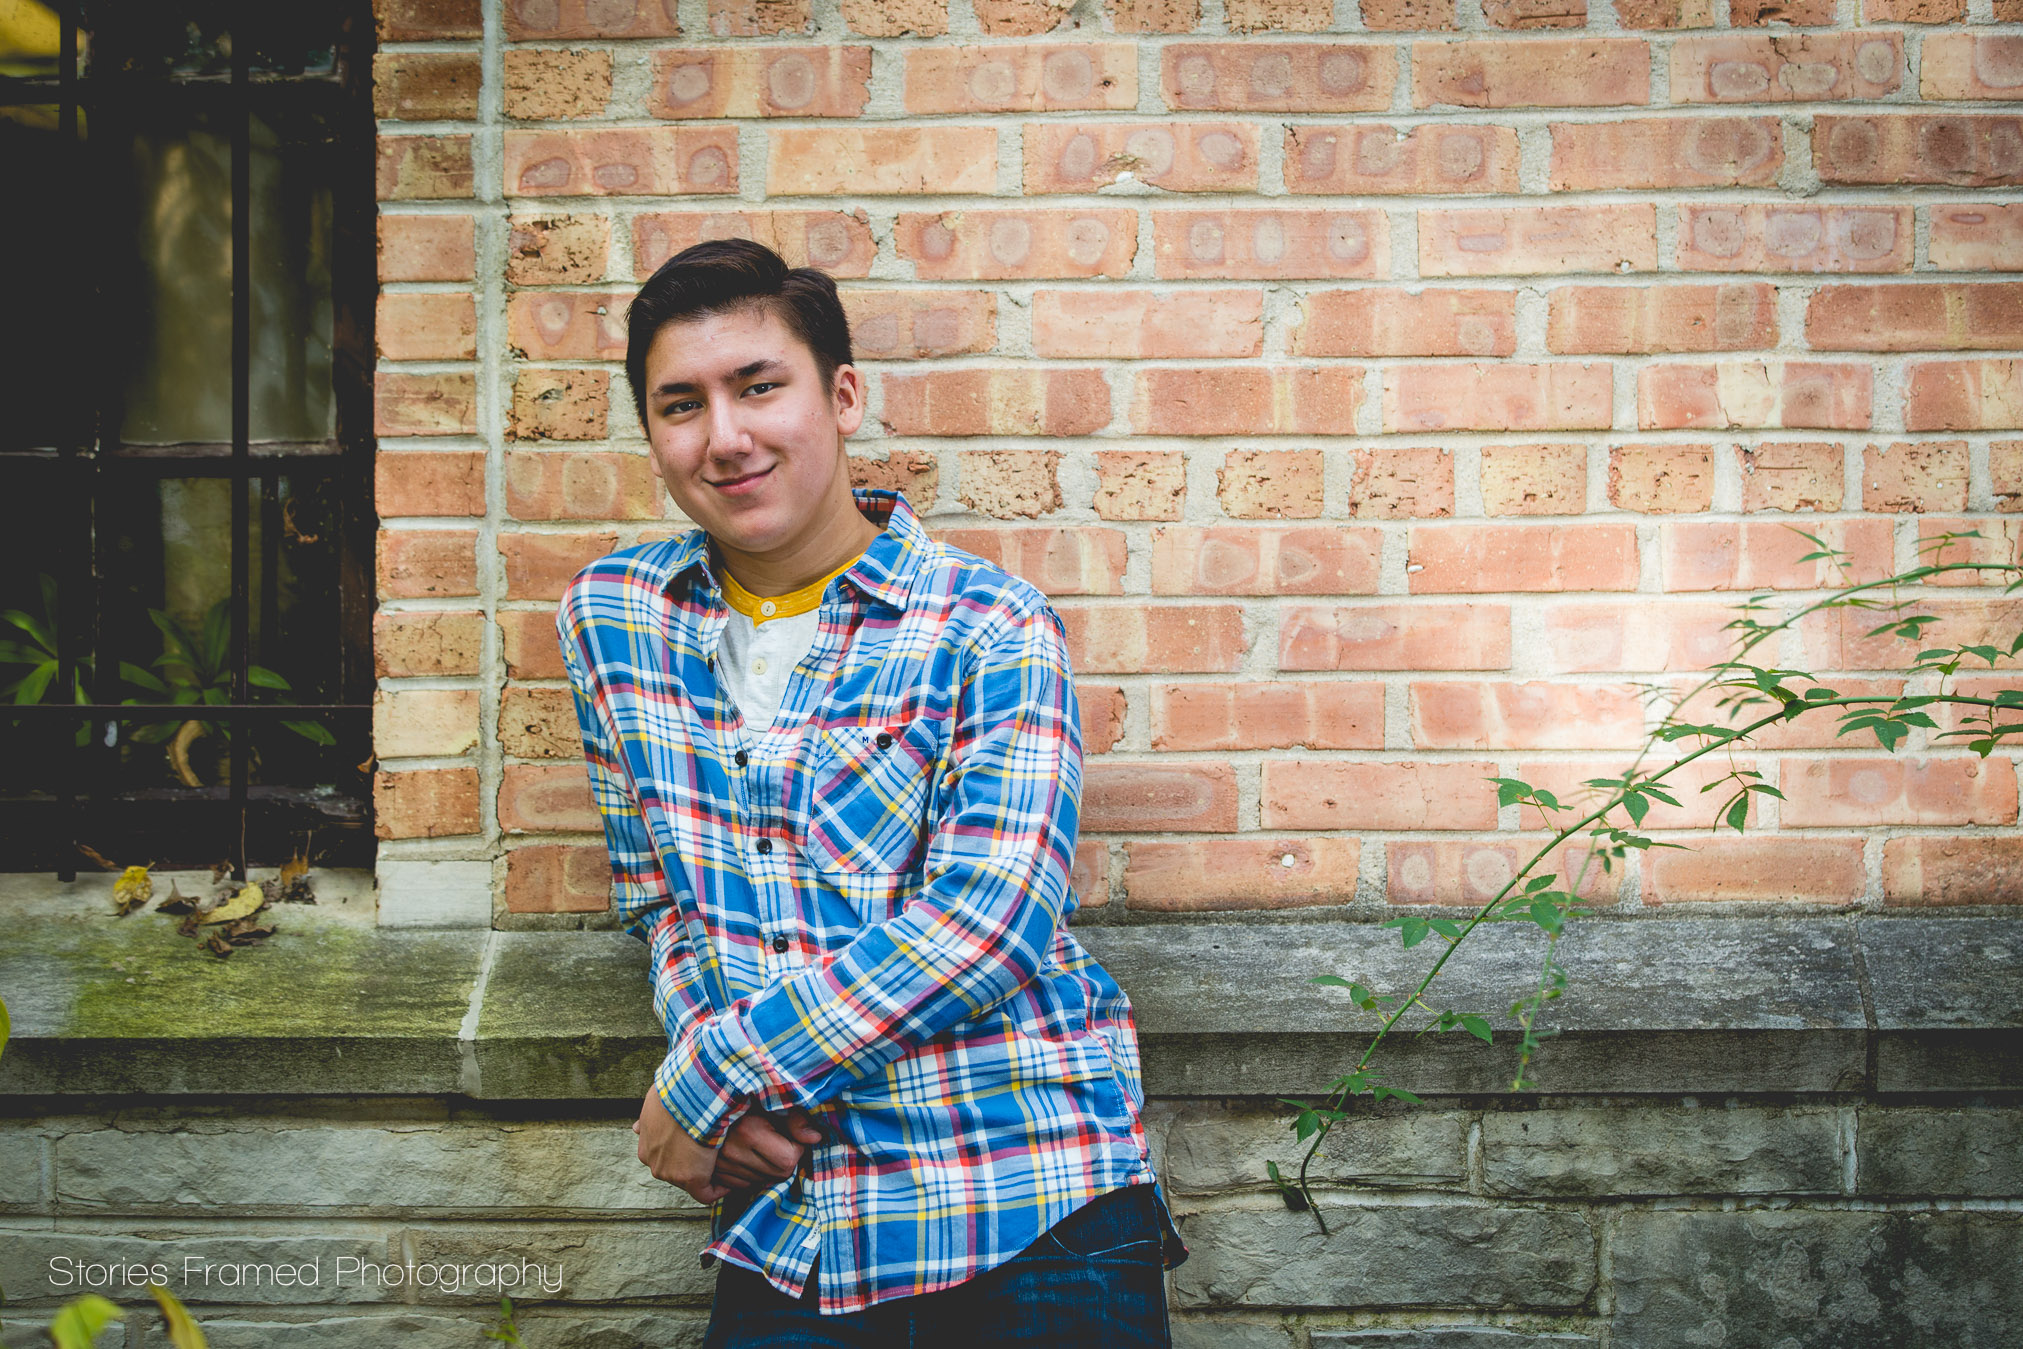 senior boy in plaid shirt leaning on brick building